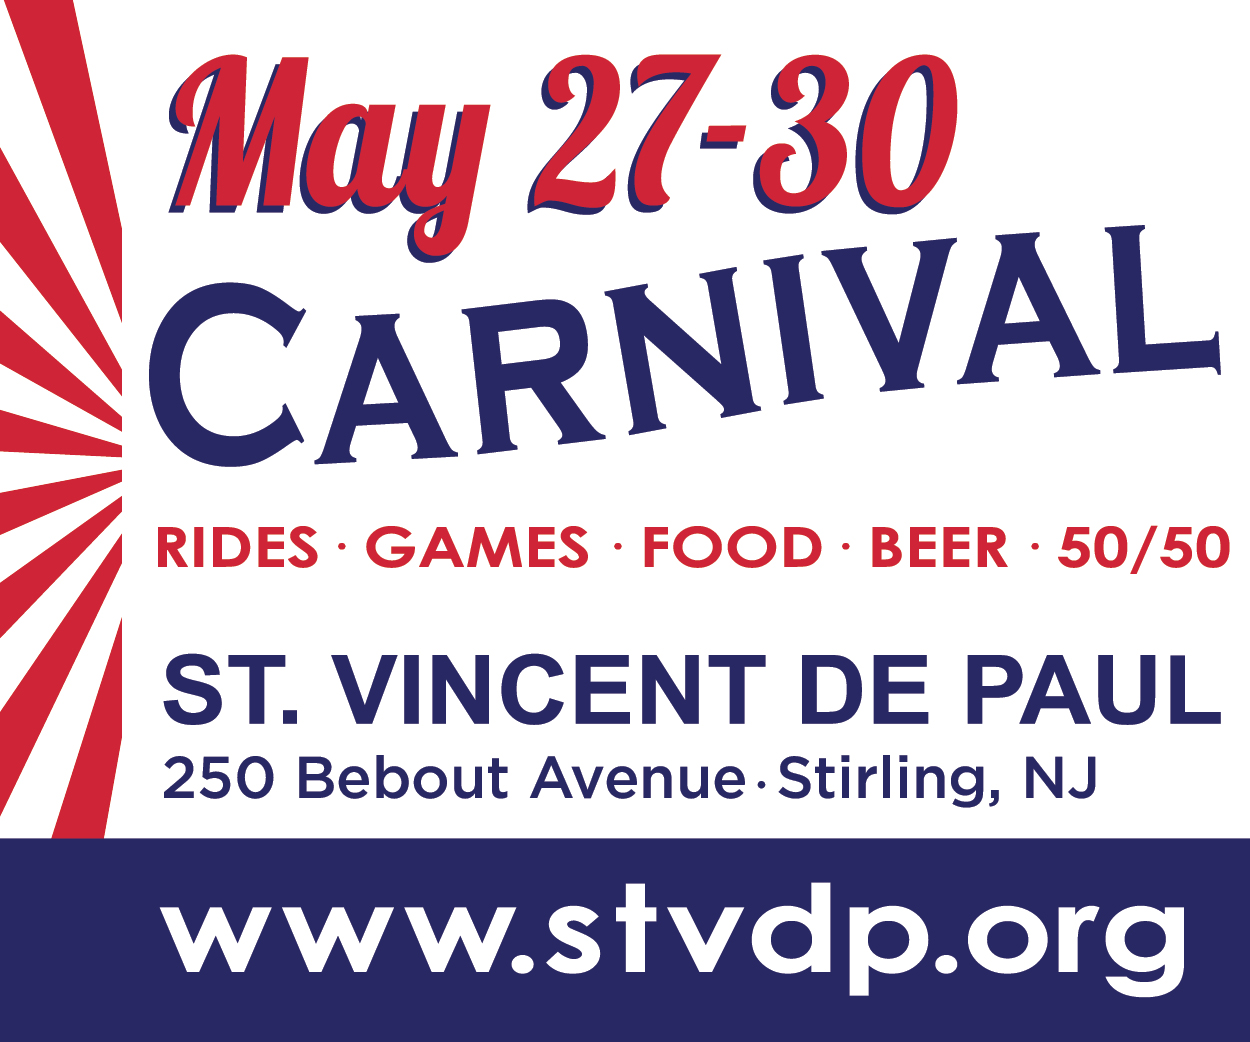 St. Vincent de Paul 2nd Annual Carnival in Sterling